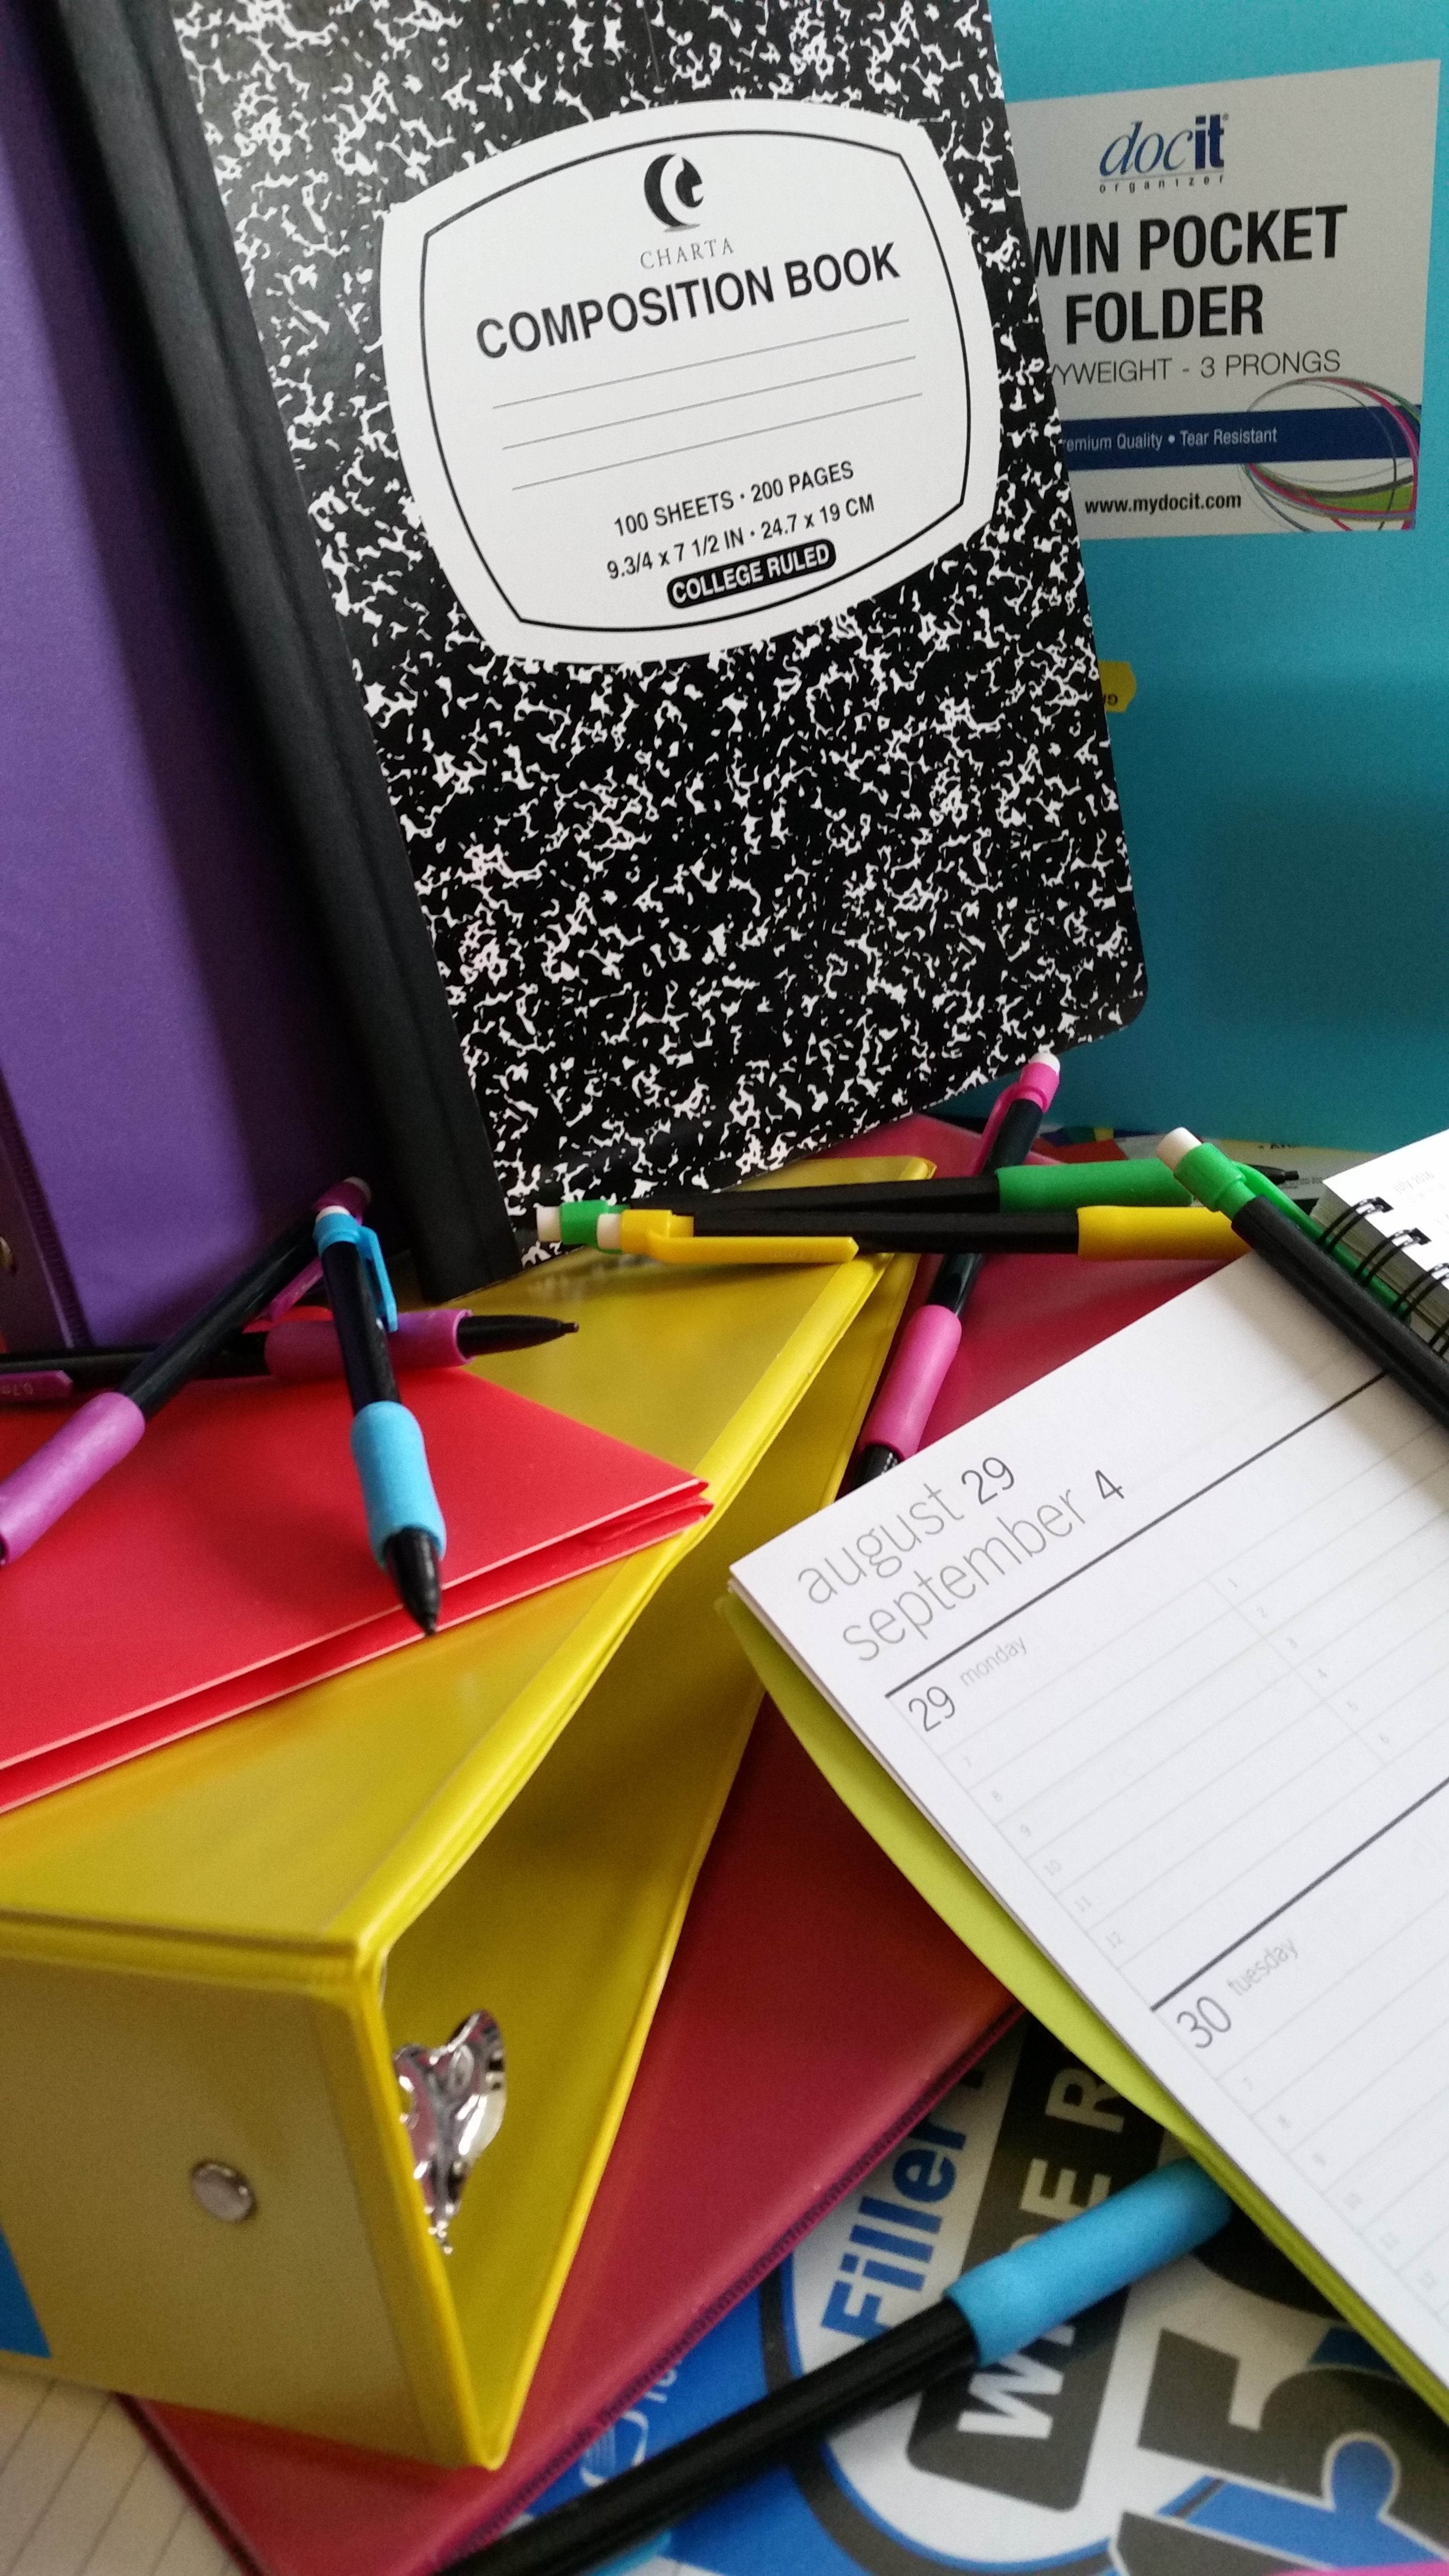 11 Ways You Can Benefit from Back-to-School Expenses